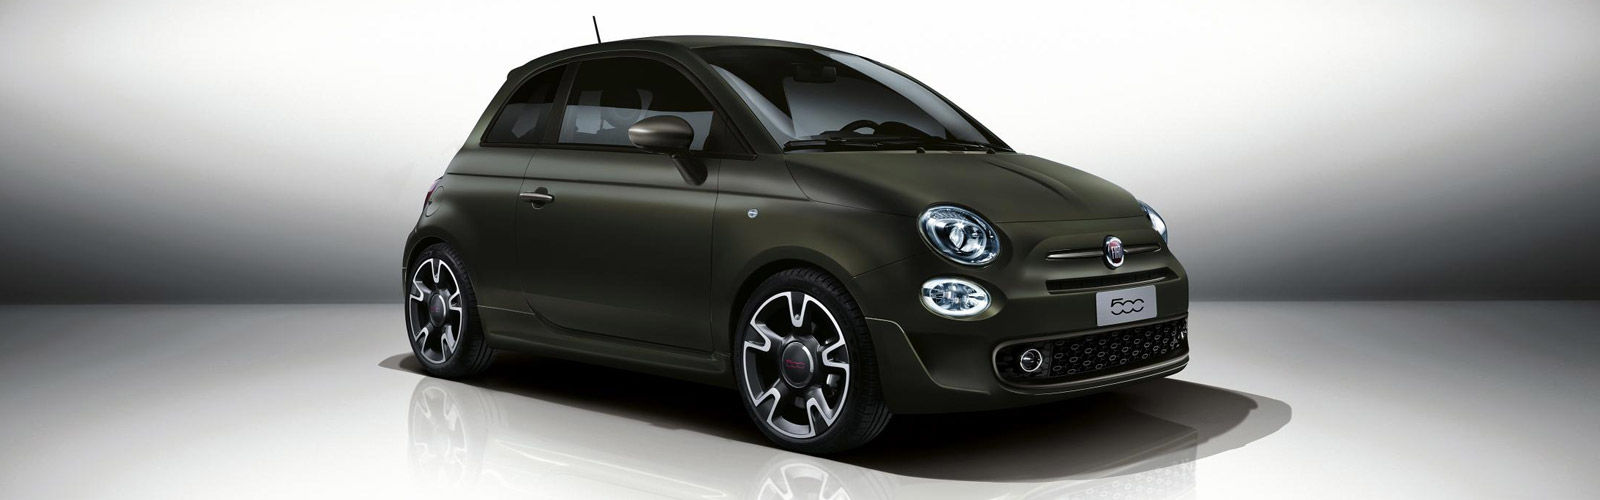 2016 Fiat 500S: complete guide | carwow